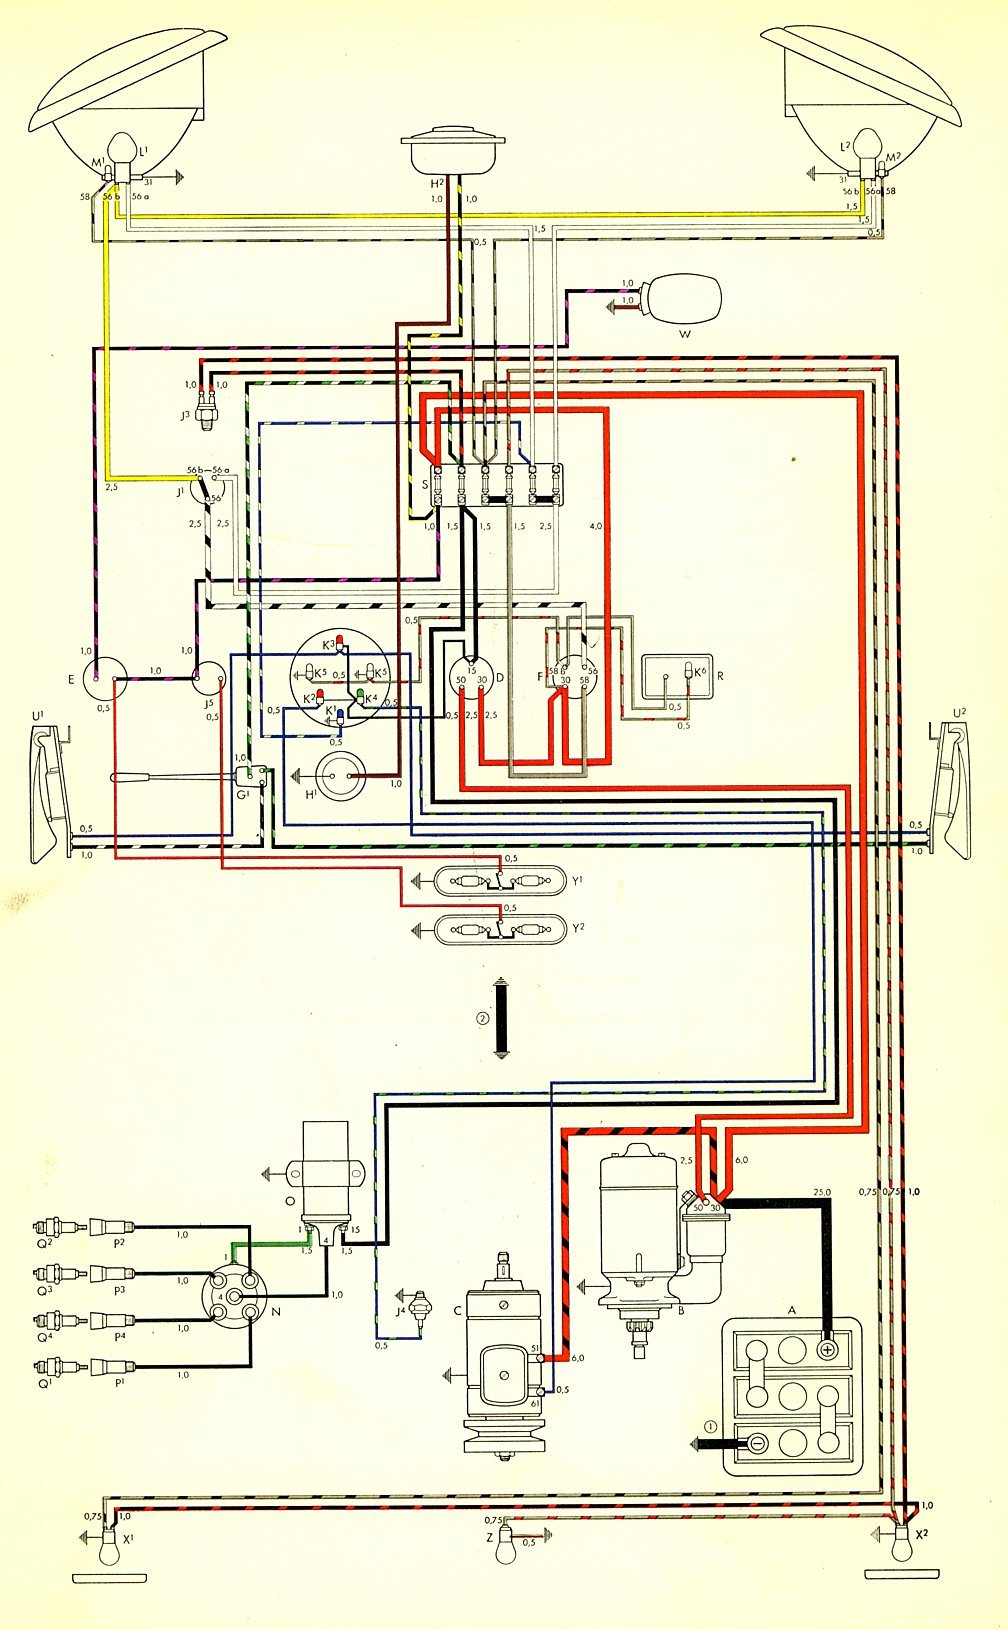 Chevrolet 1983 Pickup Wire Diagram Wiring Library 1982 Dodge Ramcharger